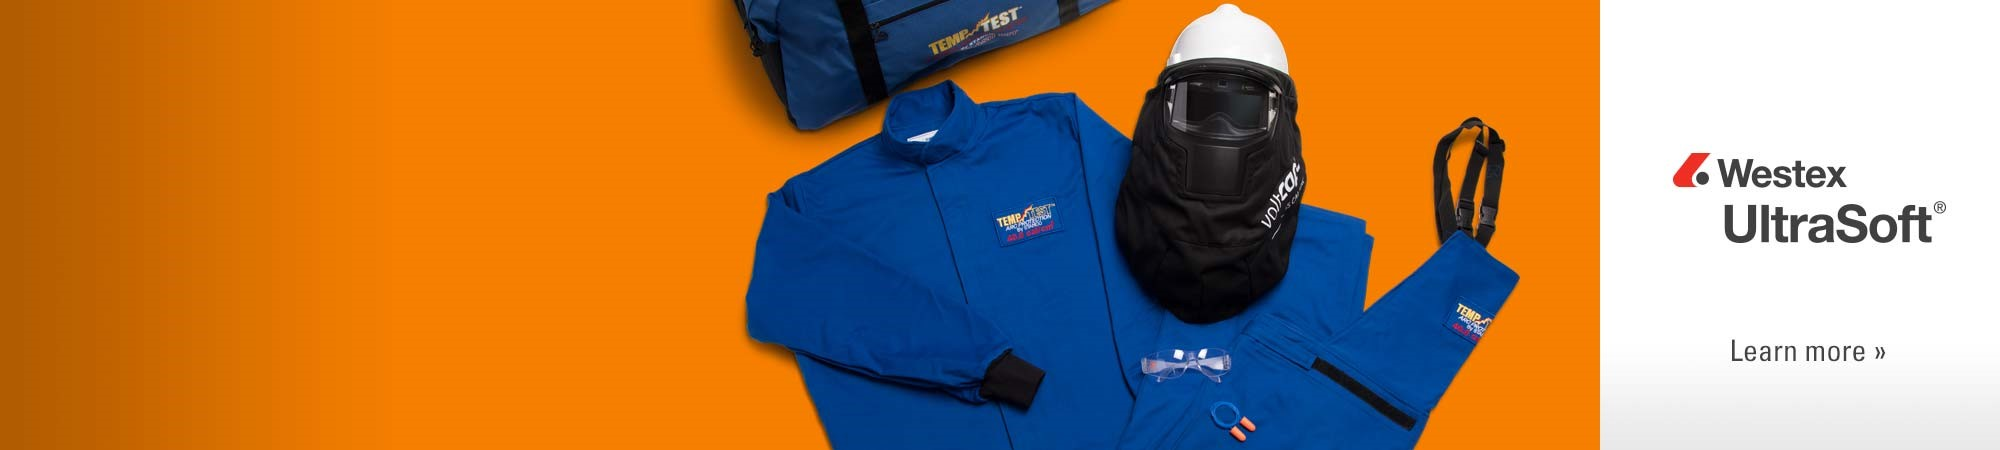 Westex UltraSoft Fabrics - Stanco Safety Products